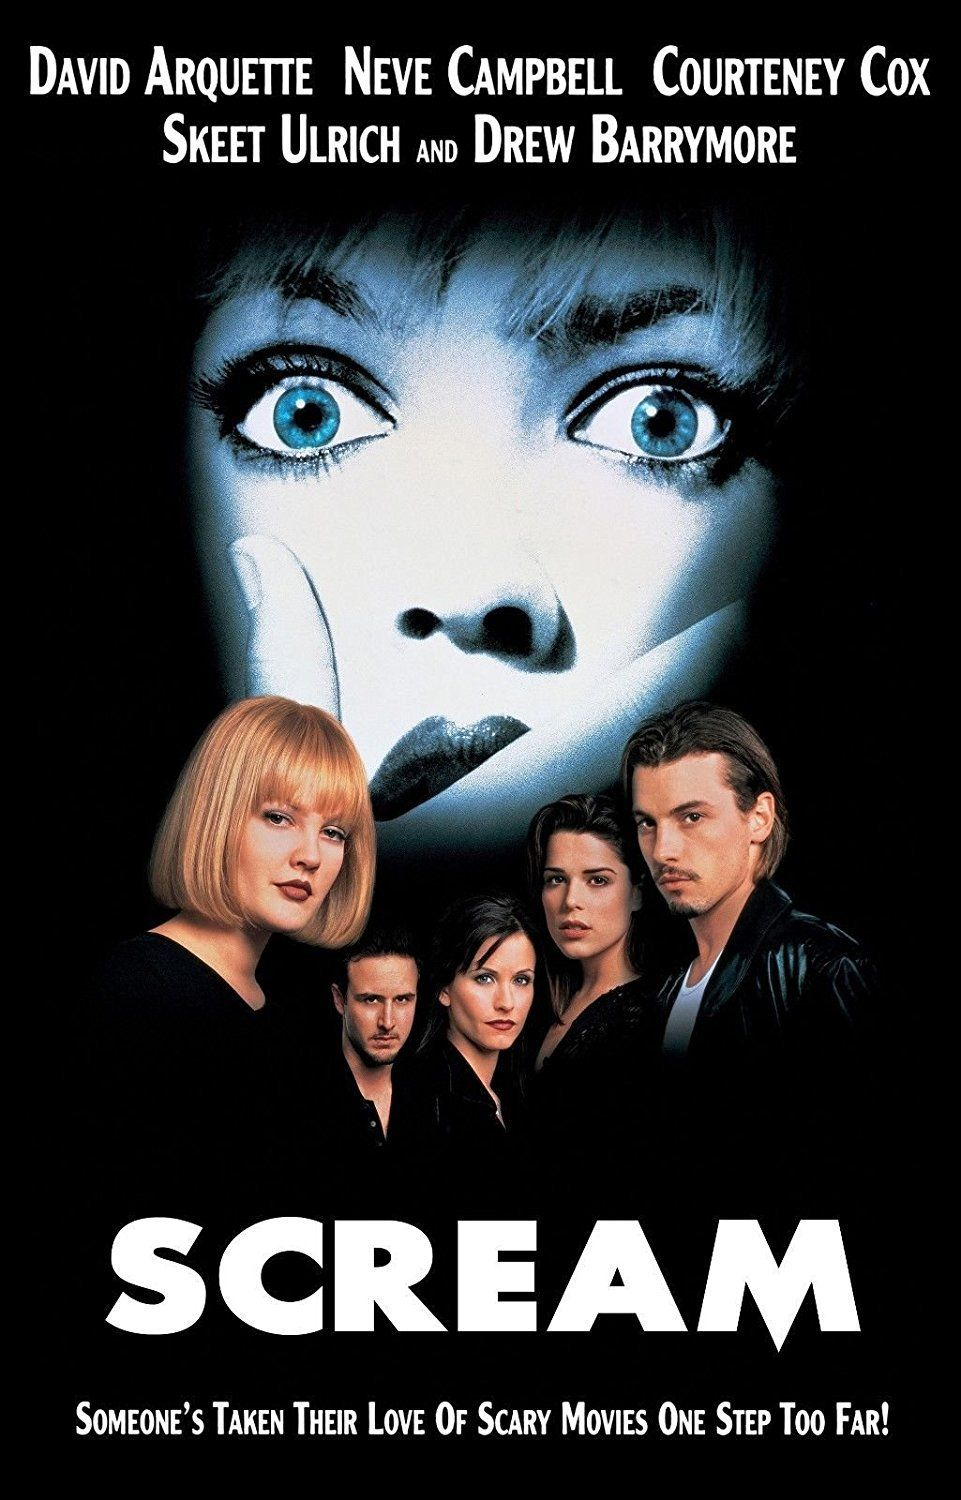 'Scream' (1996) Scream is a horror classic and, when it was released, it turned the genre on its head and went meta before going meta was such a common move.